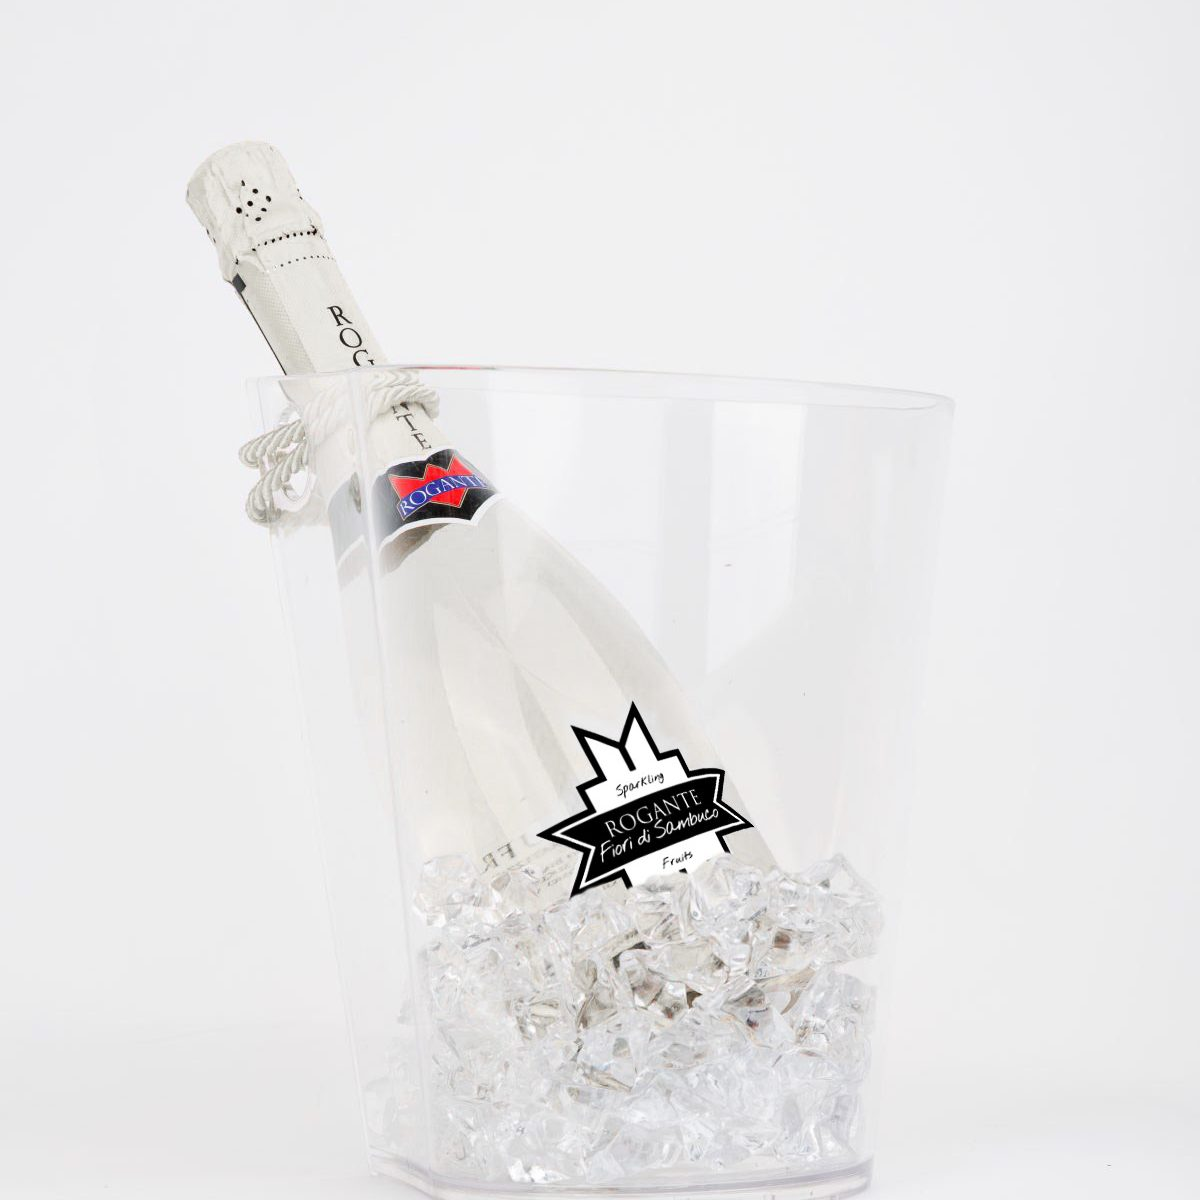 Promo Ice Bucket Rogante ElderFlower